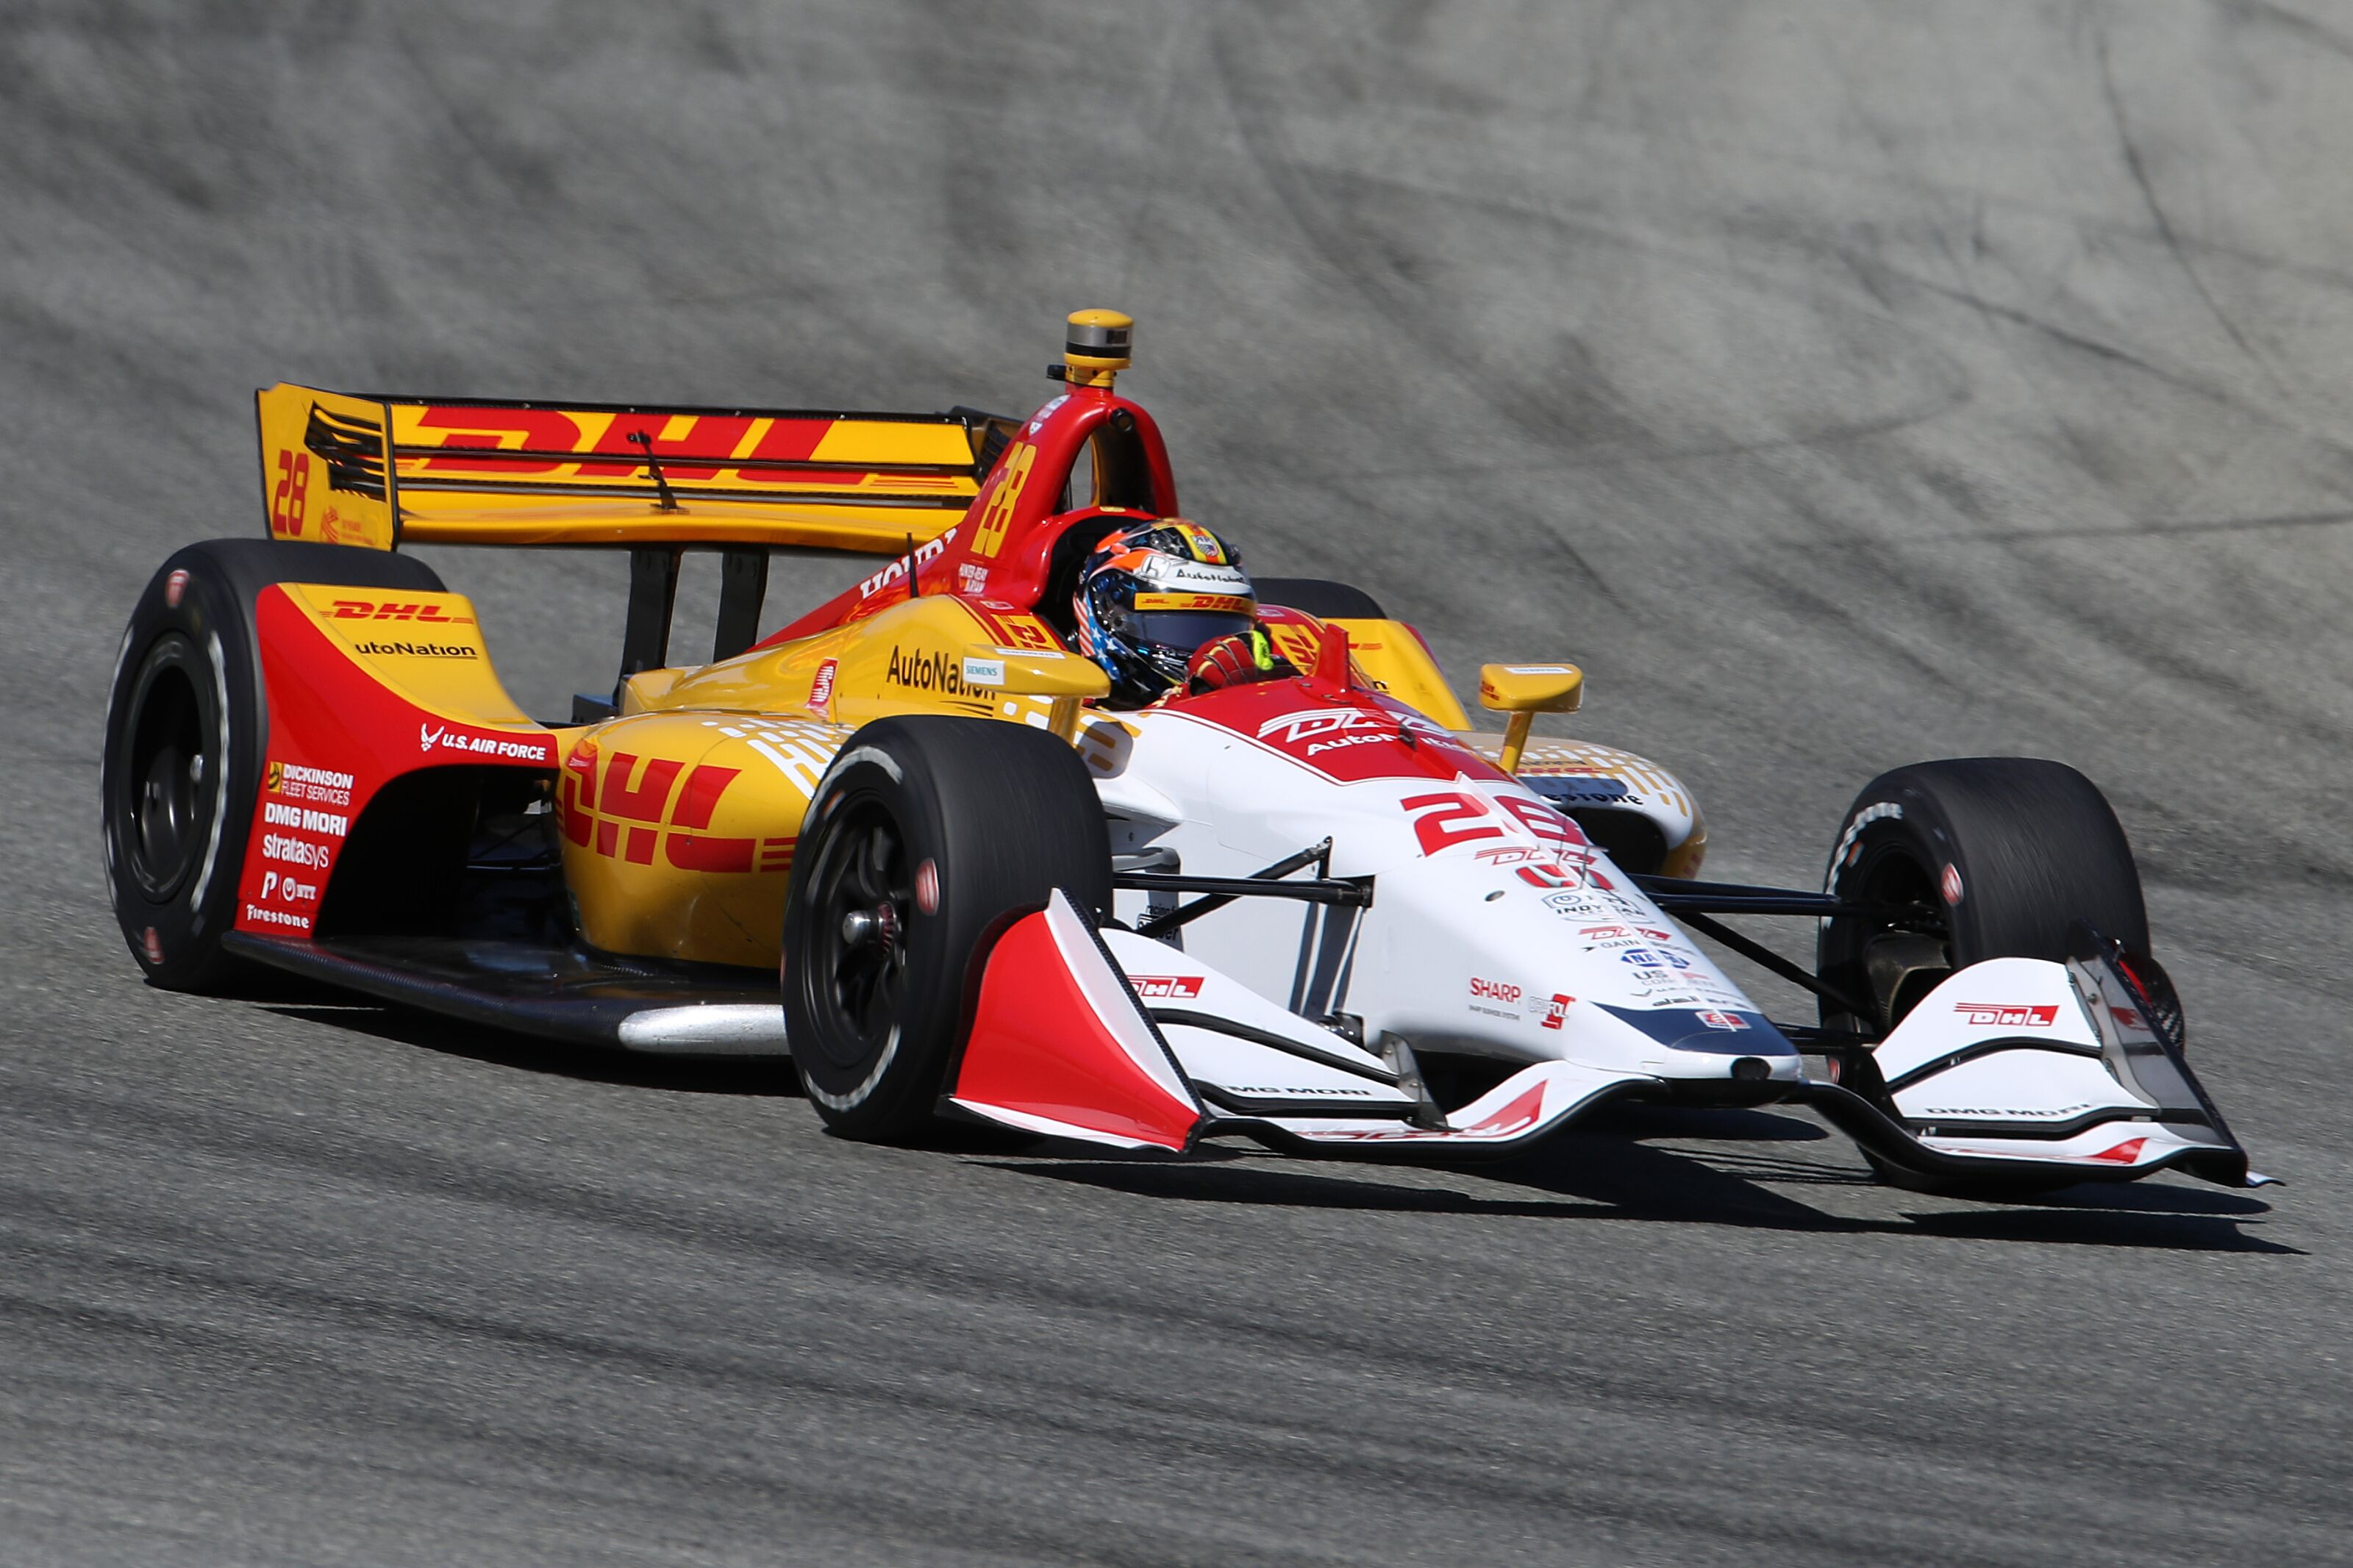 IndyCar: Ryan Hunter-Reay tops second 2019 Laguna Seca practice